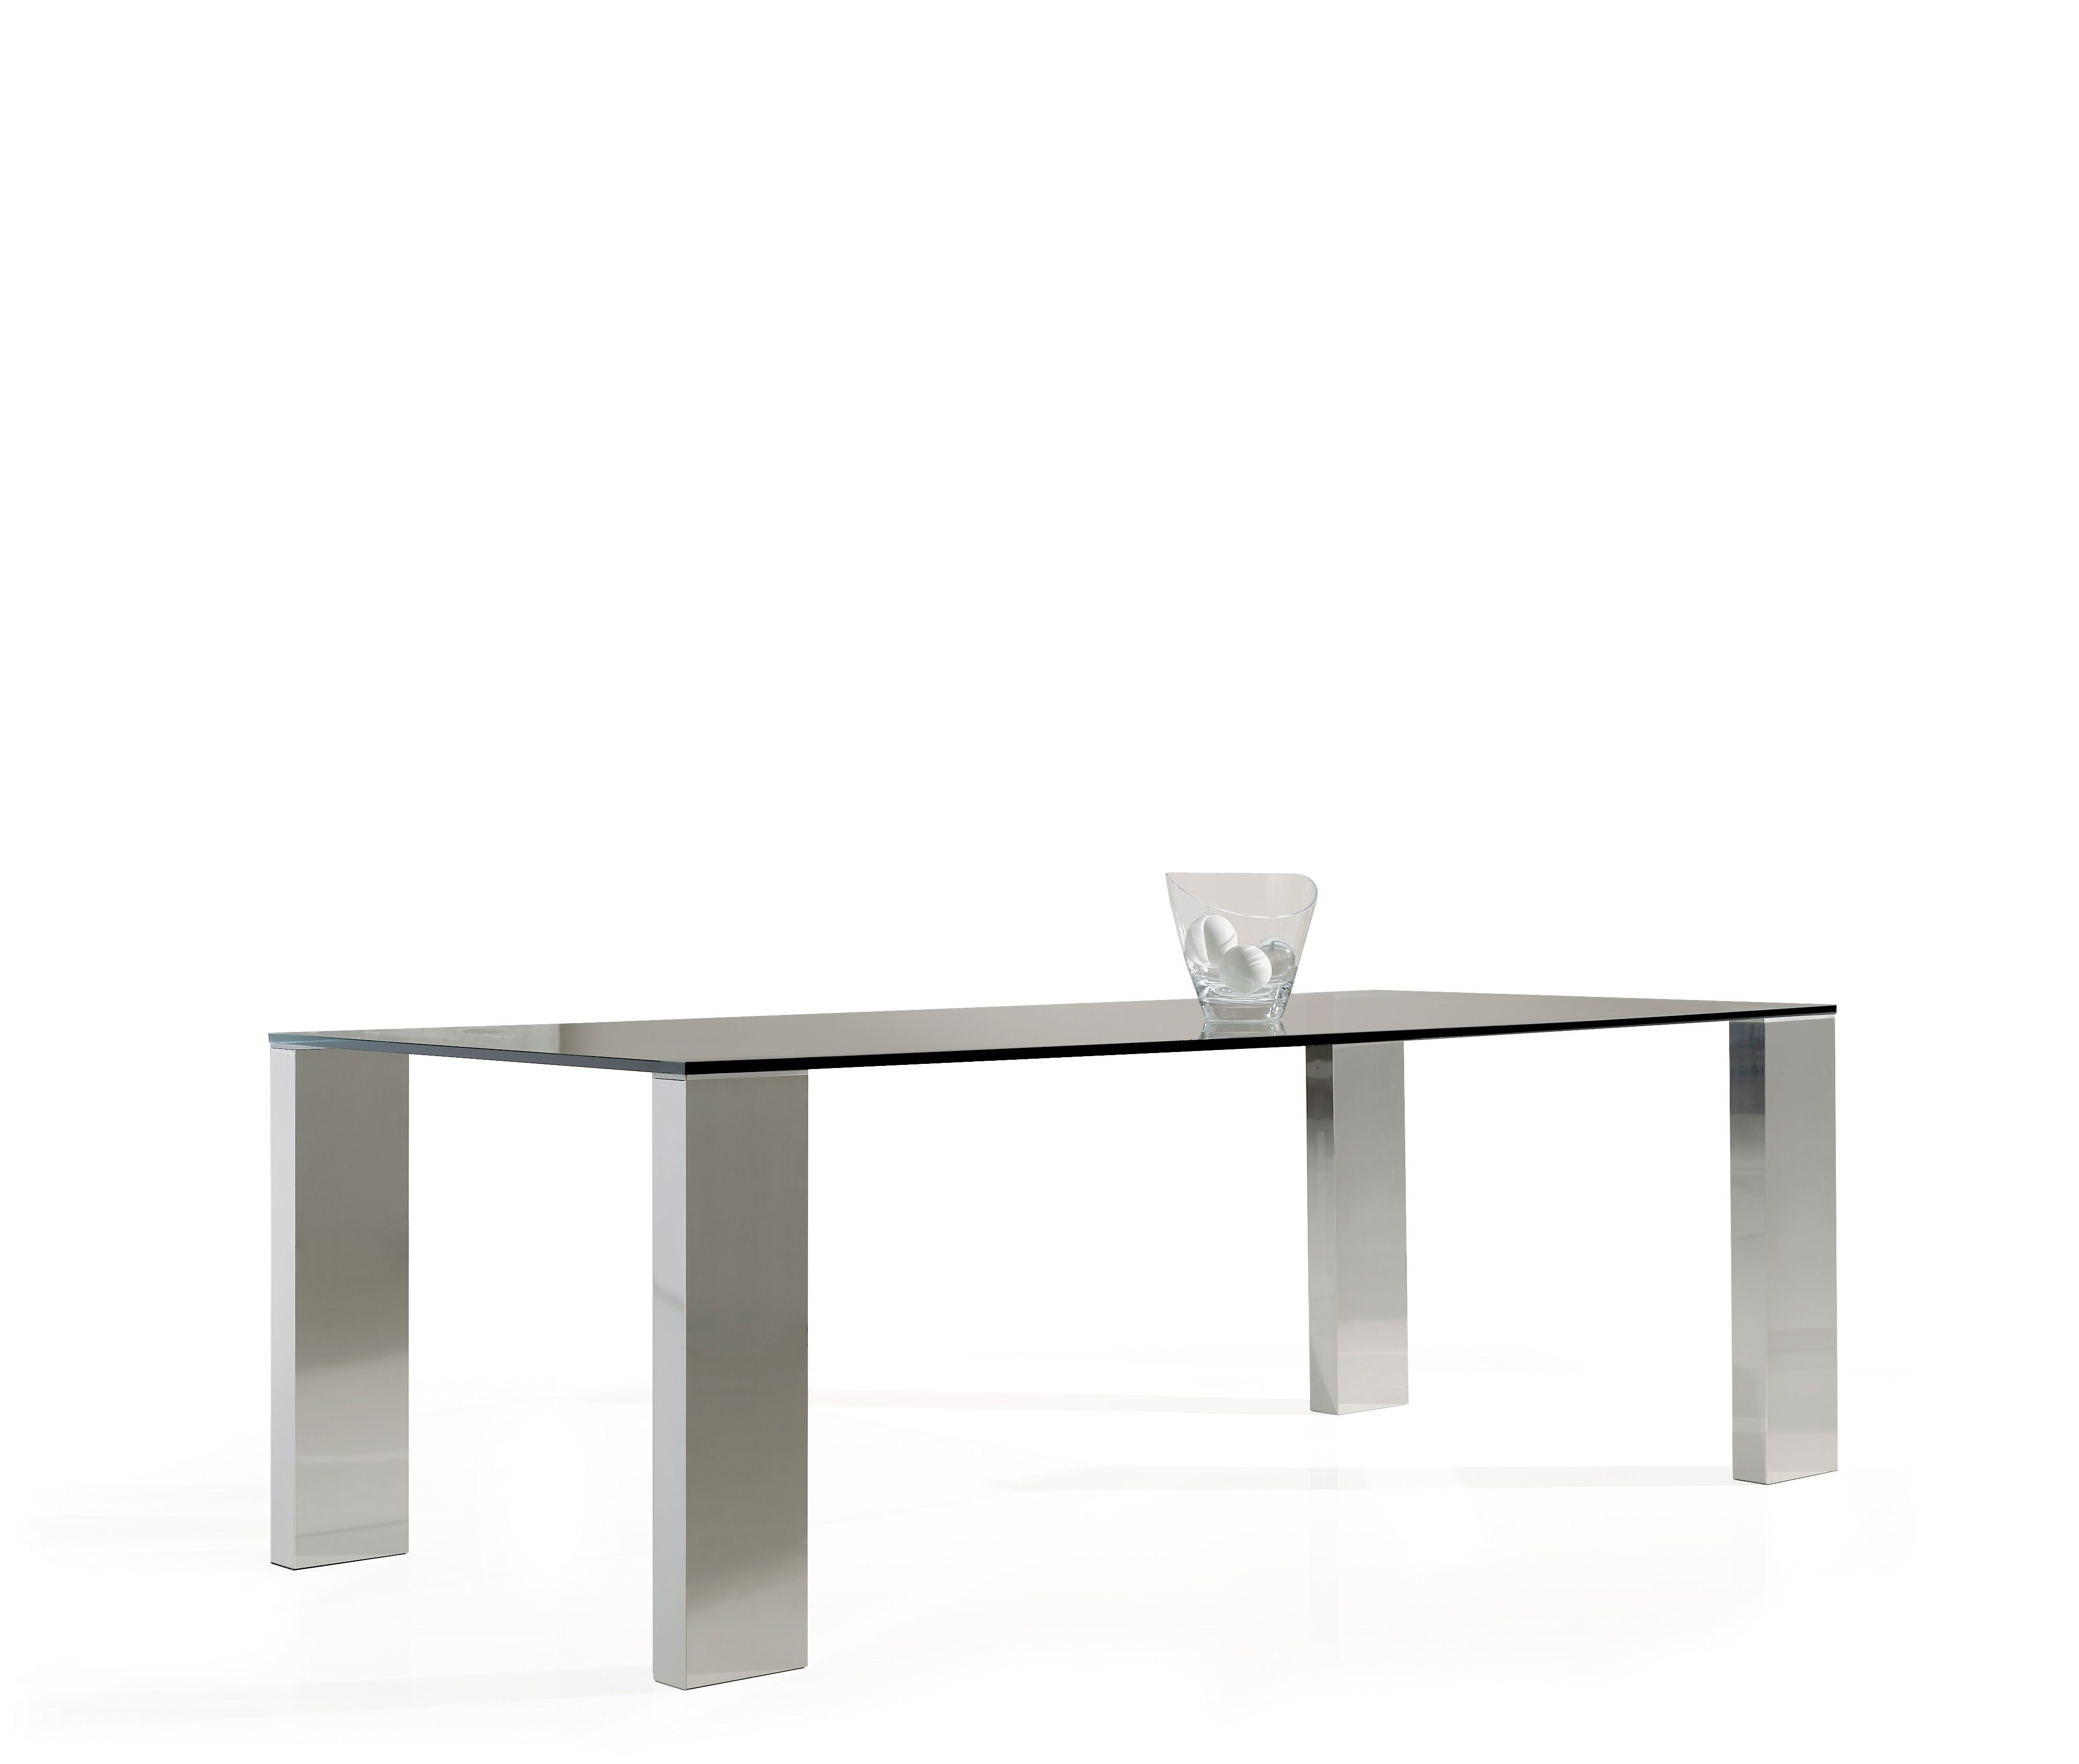 dining table stainless steel inox and glass. Black Bedroom Furniture Sets. Home Design Ideas